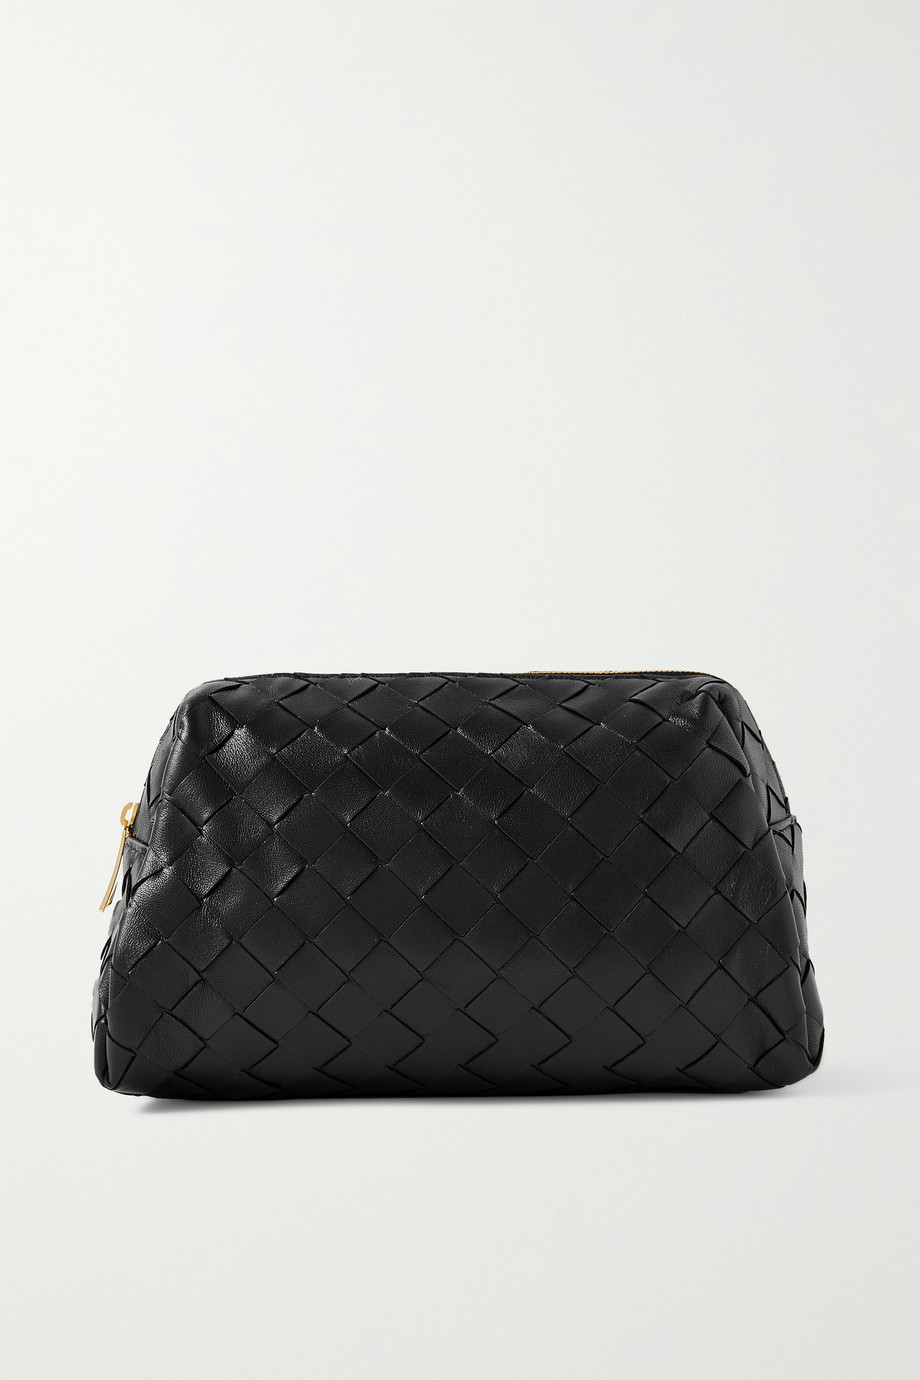 BOTTEGA VENETA Intrecciato medium leather cosmetics case